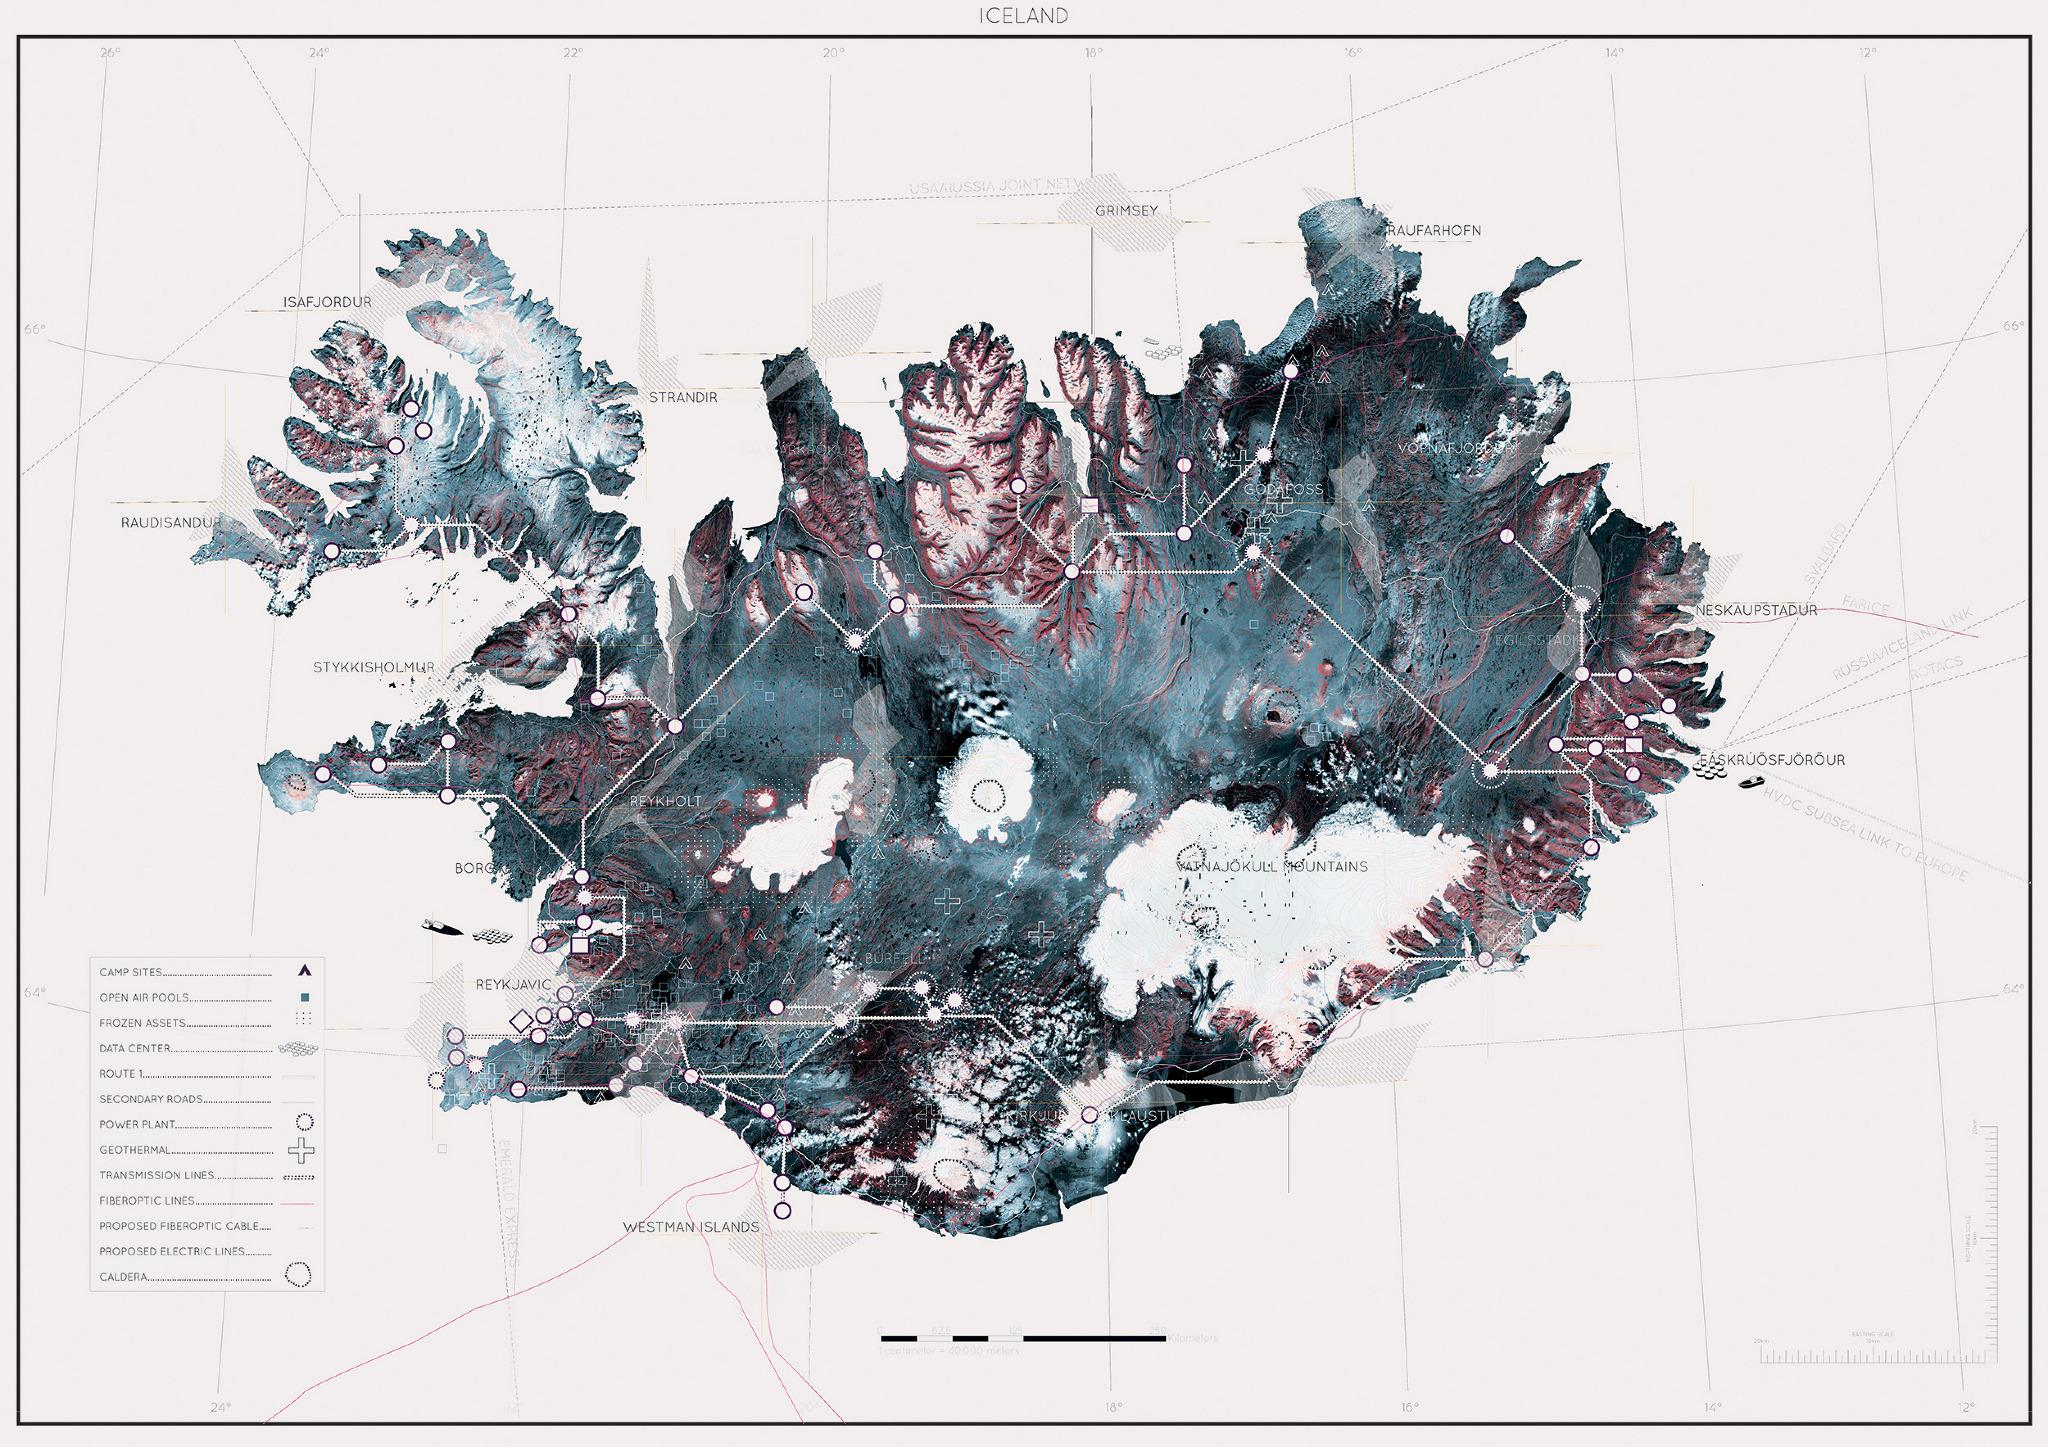 12.12.17_Iceland Main Map_Compilation_FOR PRINT